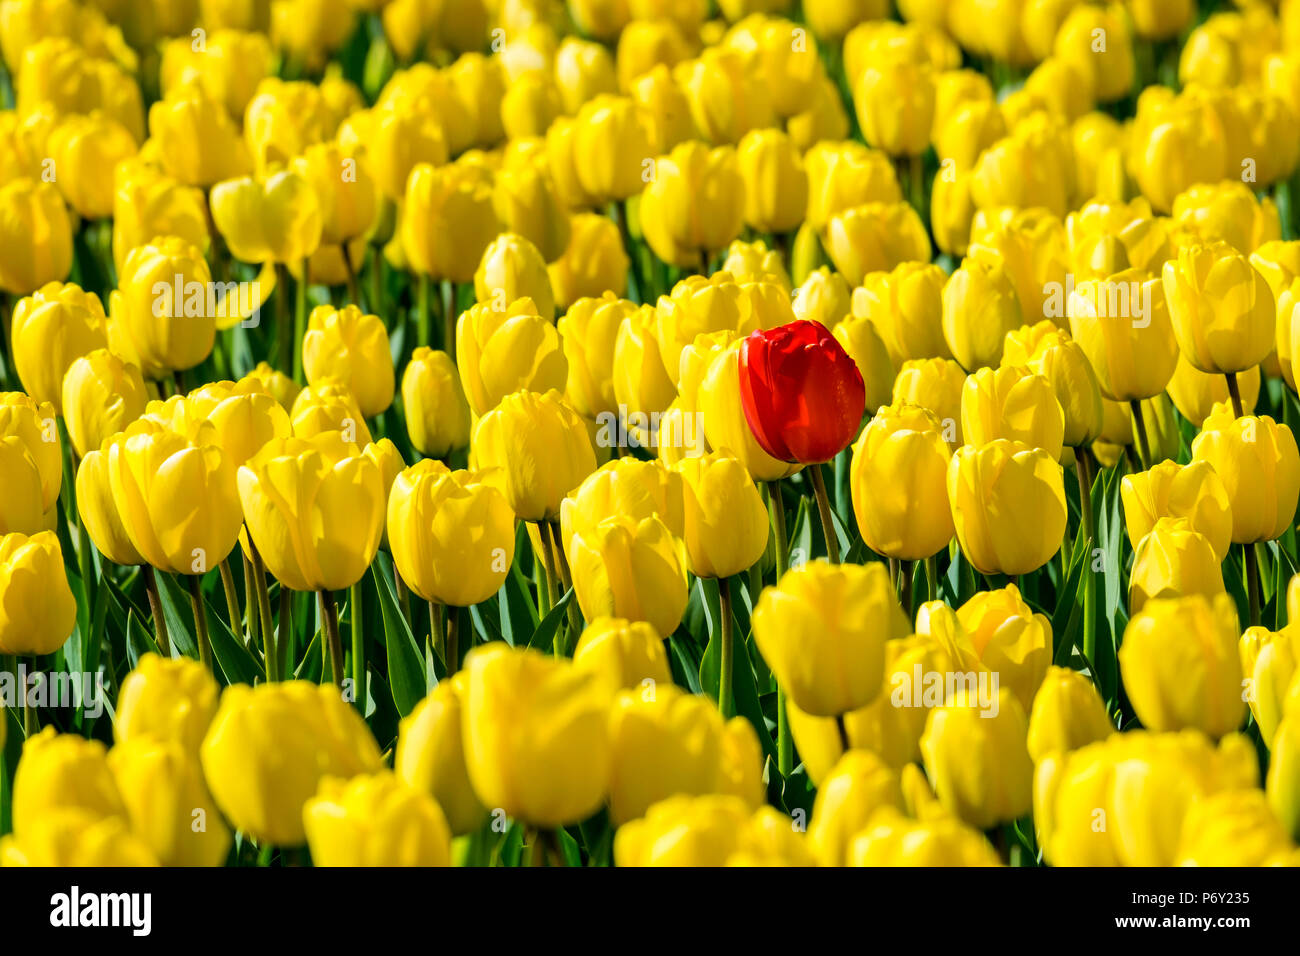 Netherlands, South Holland, Nordwijkerhout. A single red tulip flower in a field of yellow tulips. - Stock Image